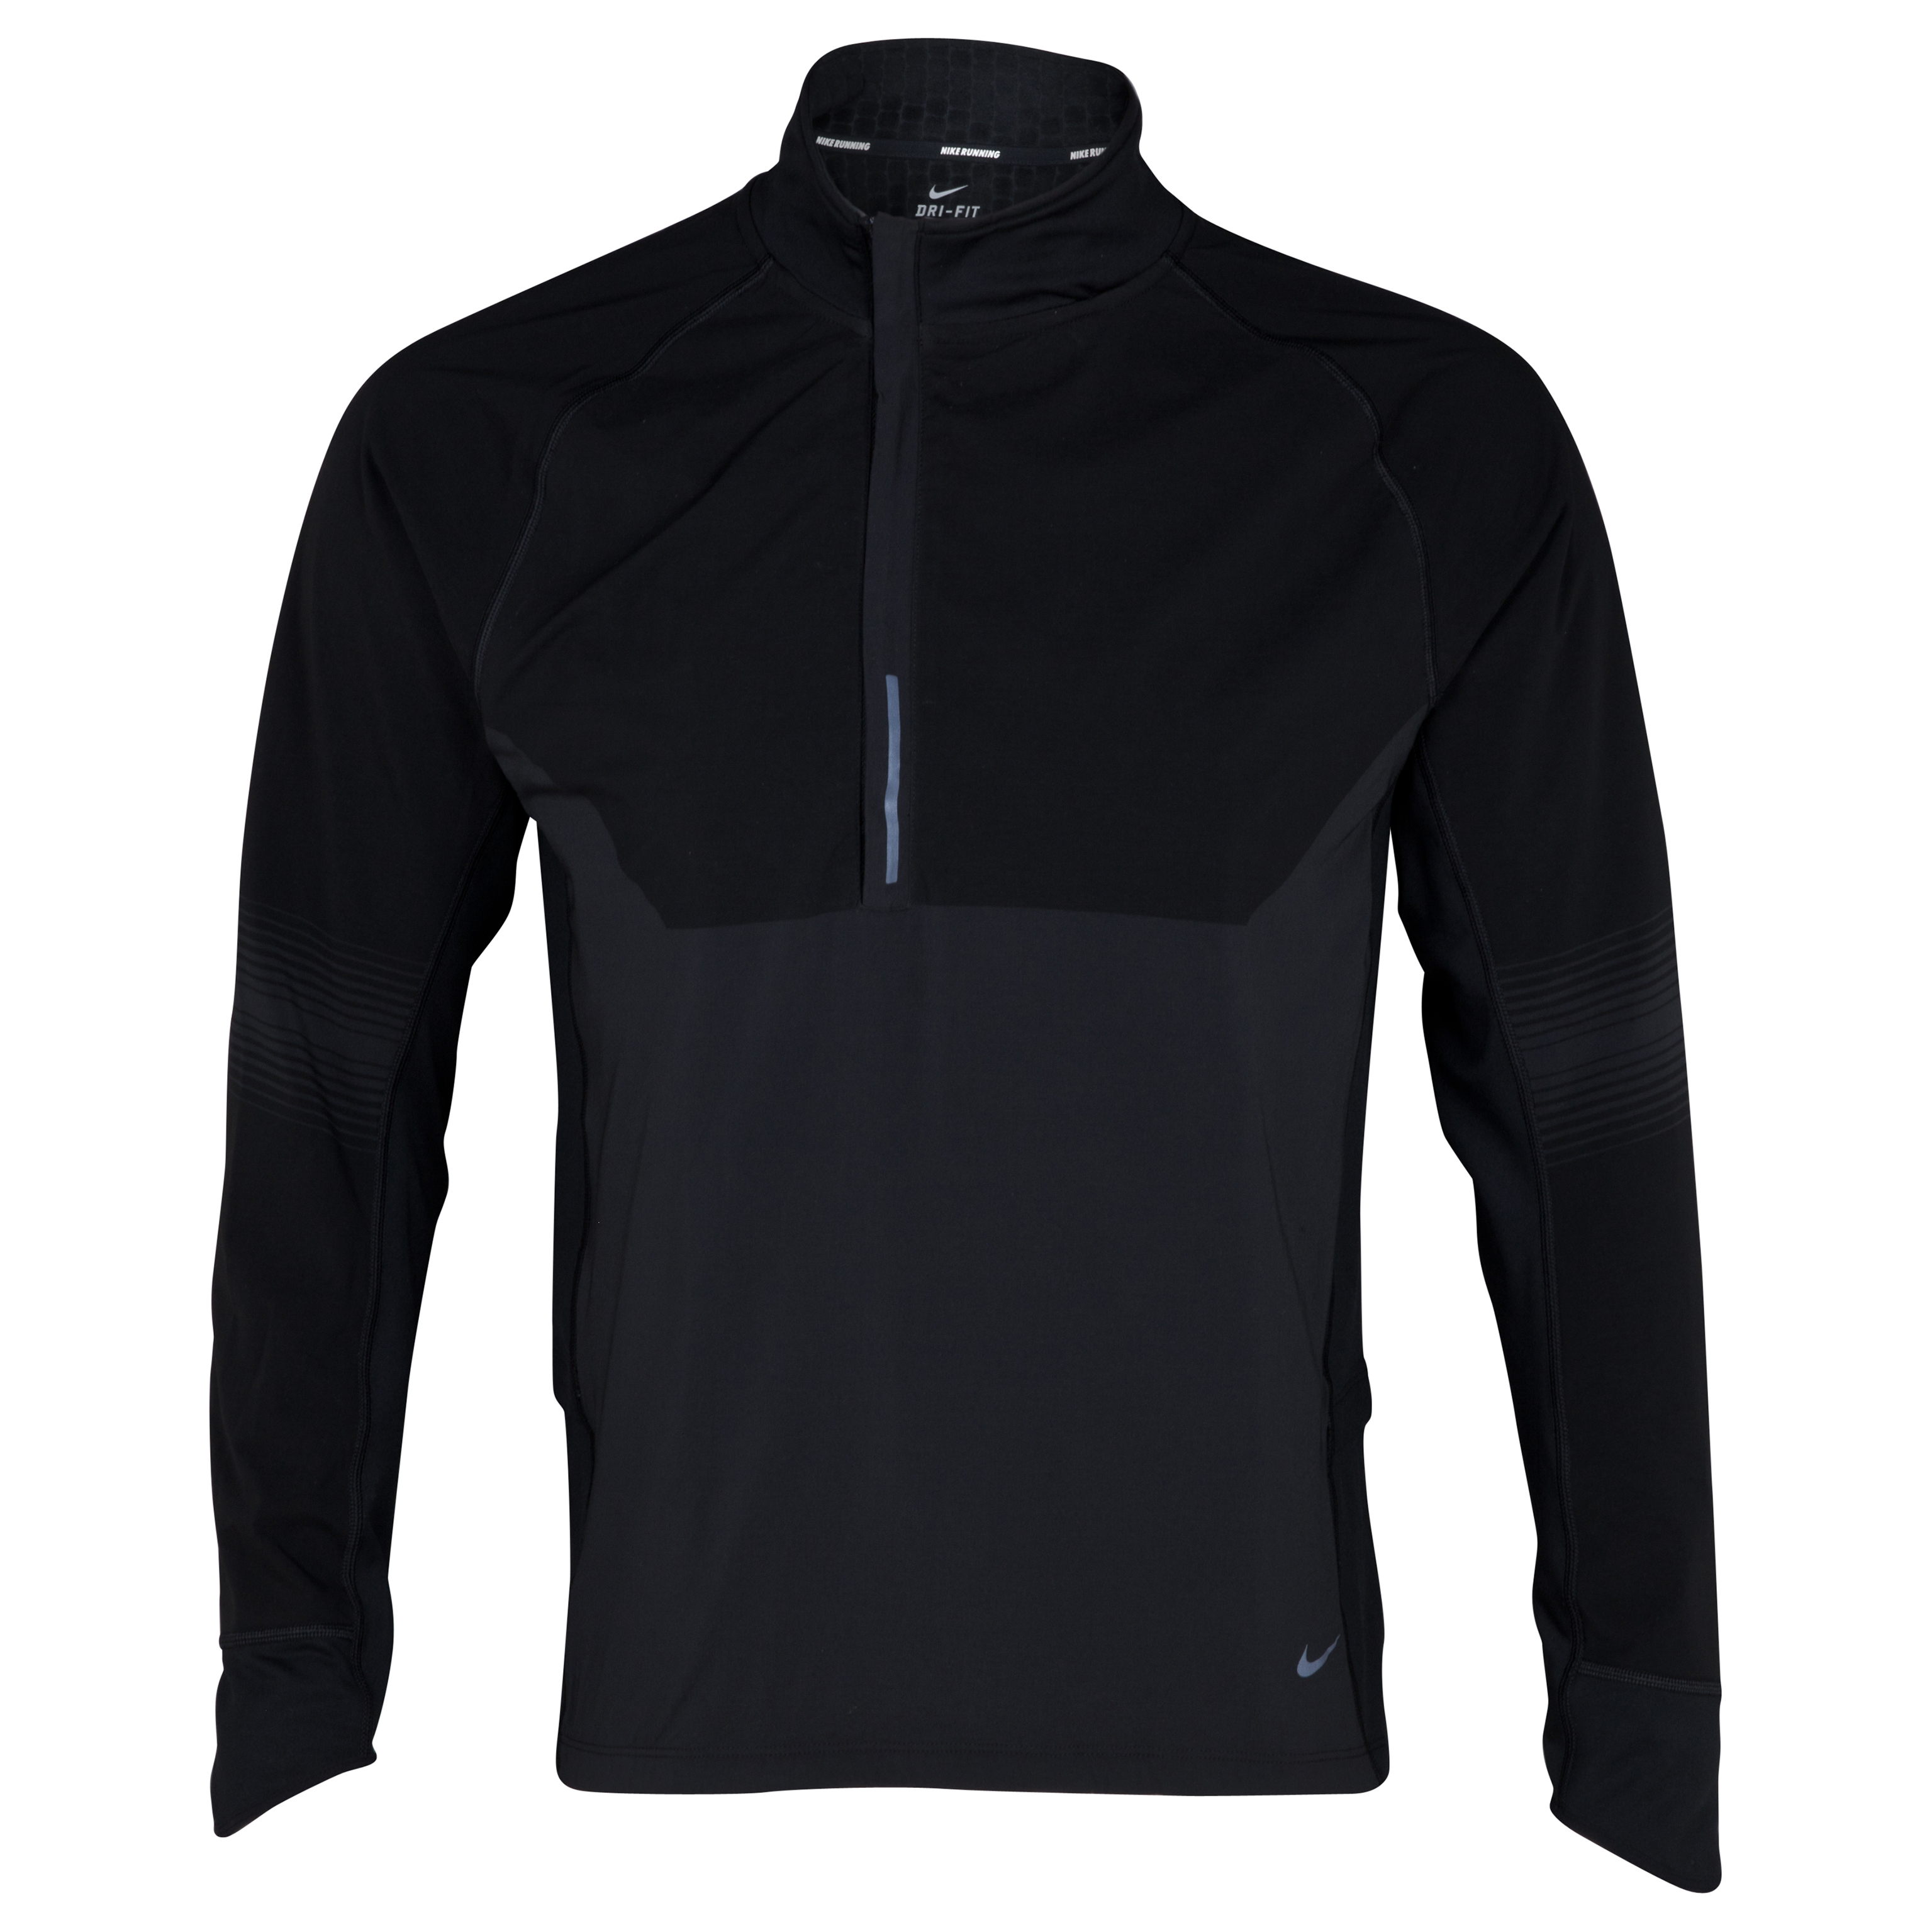 Nike Sphere Dry 1/2 Zip Top - Black/Black